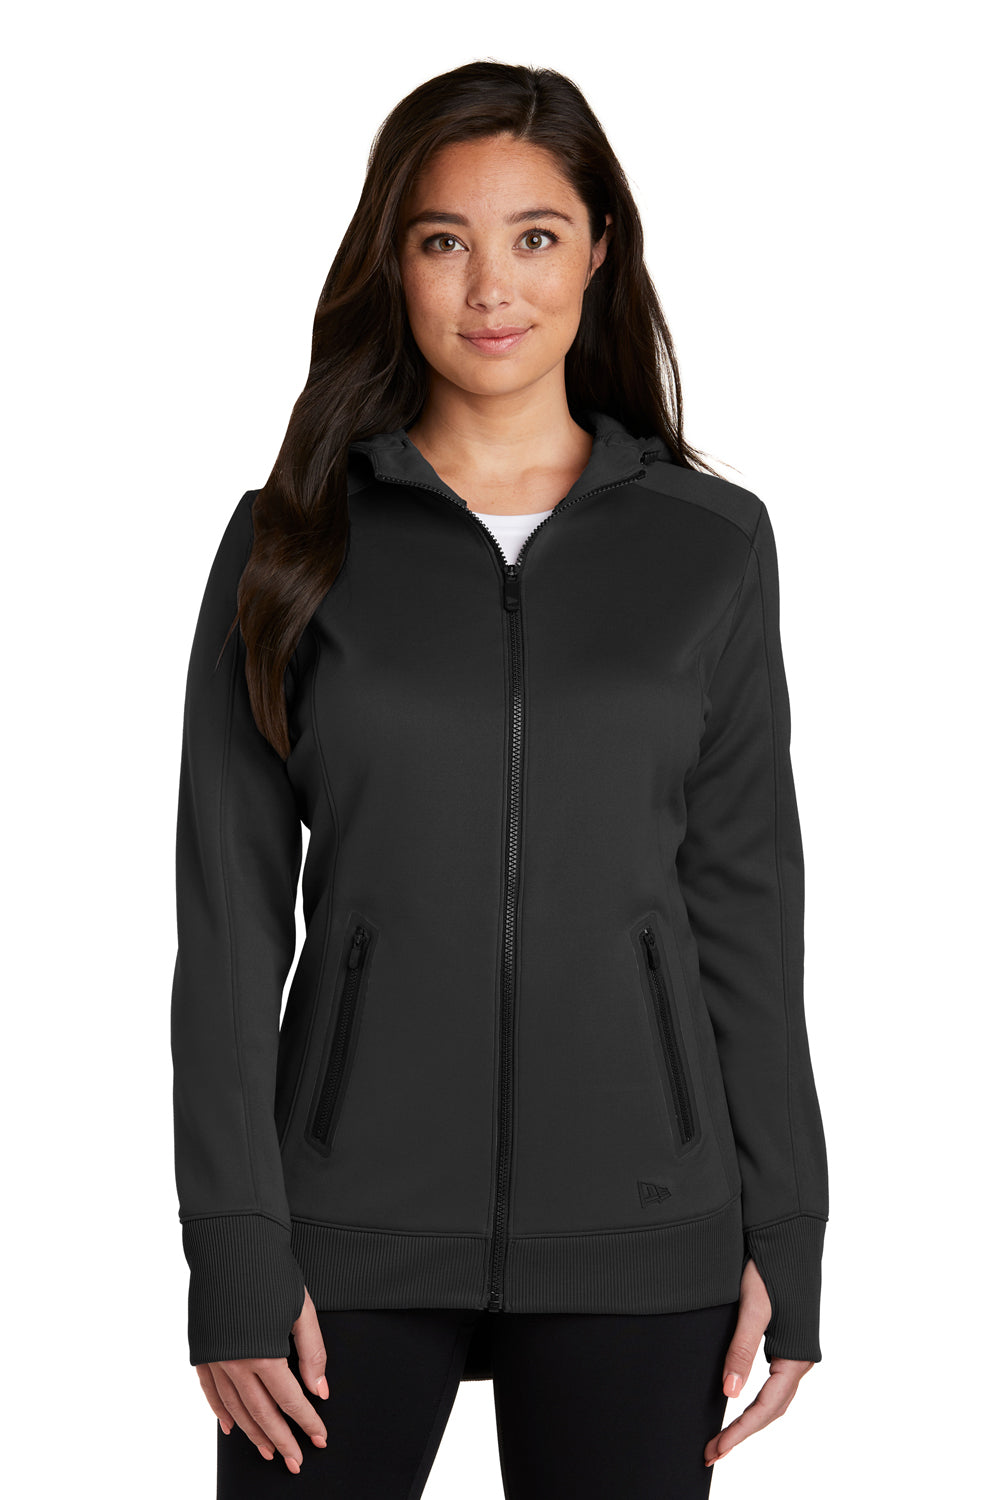 New Era LNEA522 Womens Venue Moisture Wicking Fleece Full Zip Hooded Sweatshirt Hoodie Black Front